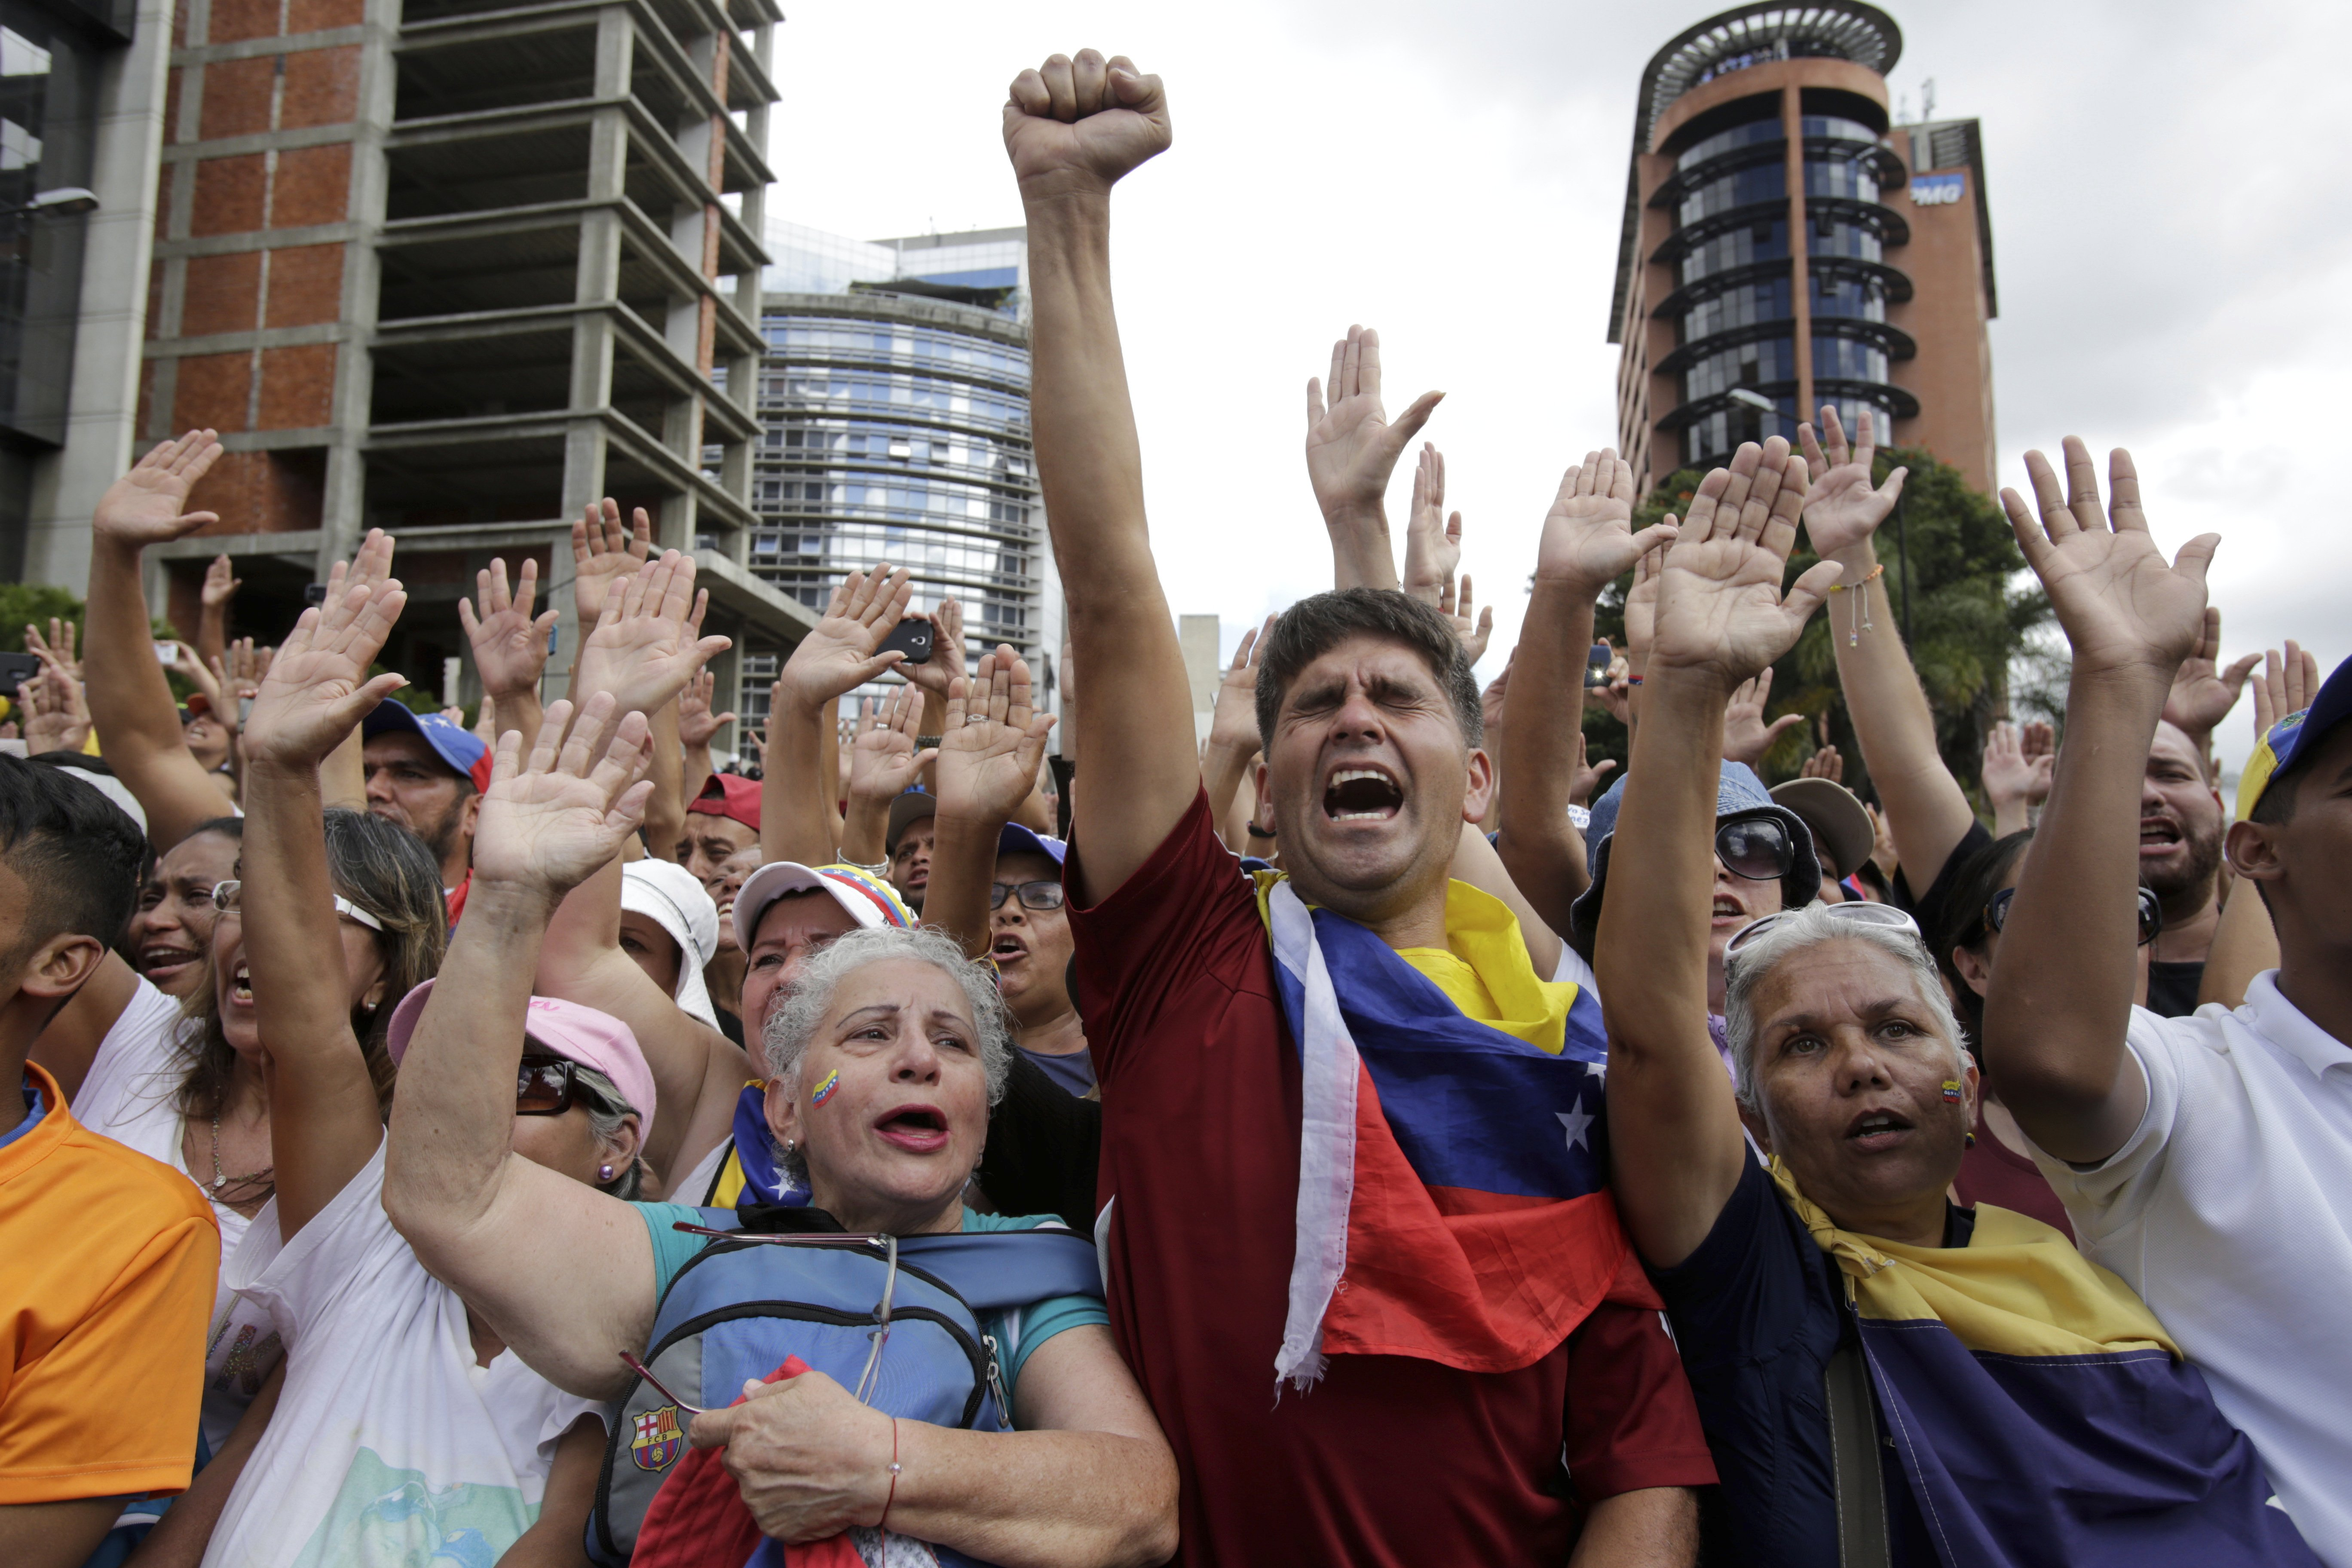 Anti-government protesters cheer after Juan Guaido, head of Venezuela's opposition-run congress, declared himself interim president of the South American country until new elections can be called, at a rally demanding the resignation of President Nicolas Maduro, in Caracas, Venezuela. (AP Photo/Boris Vergara)